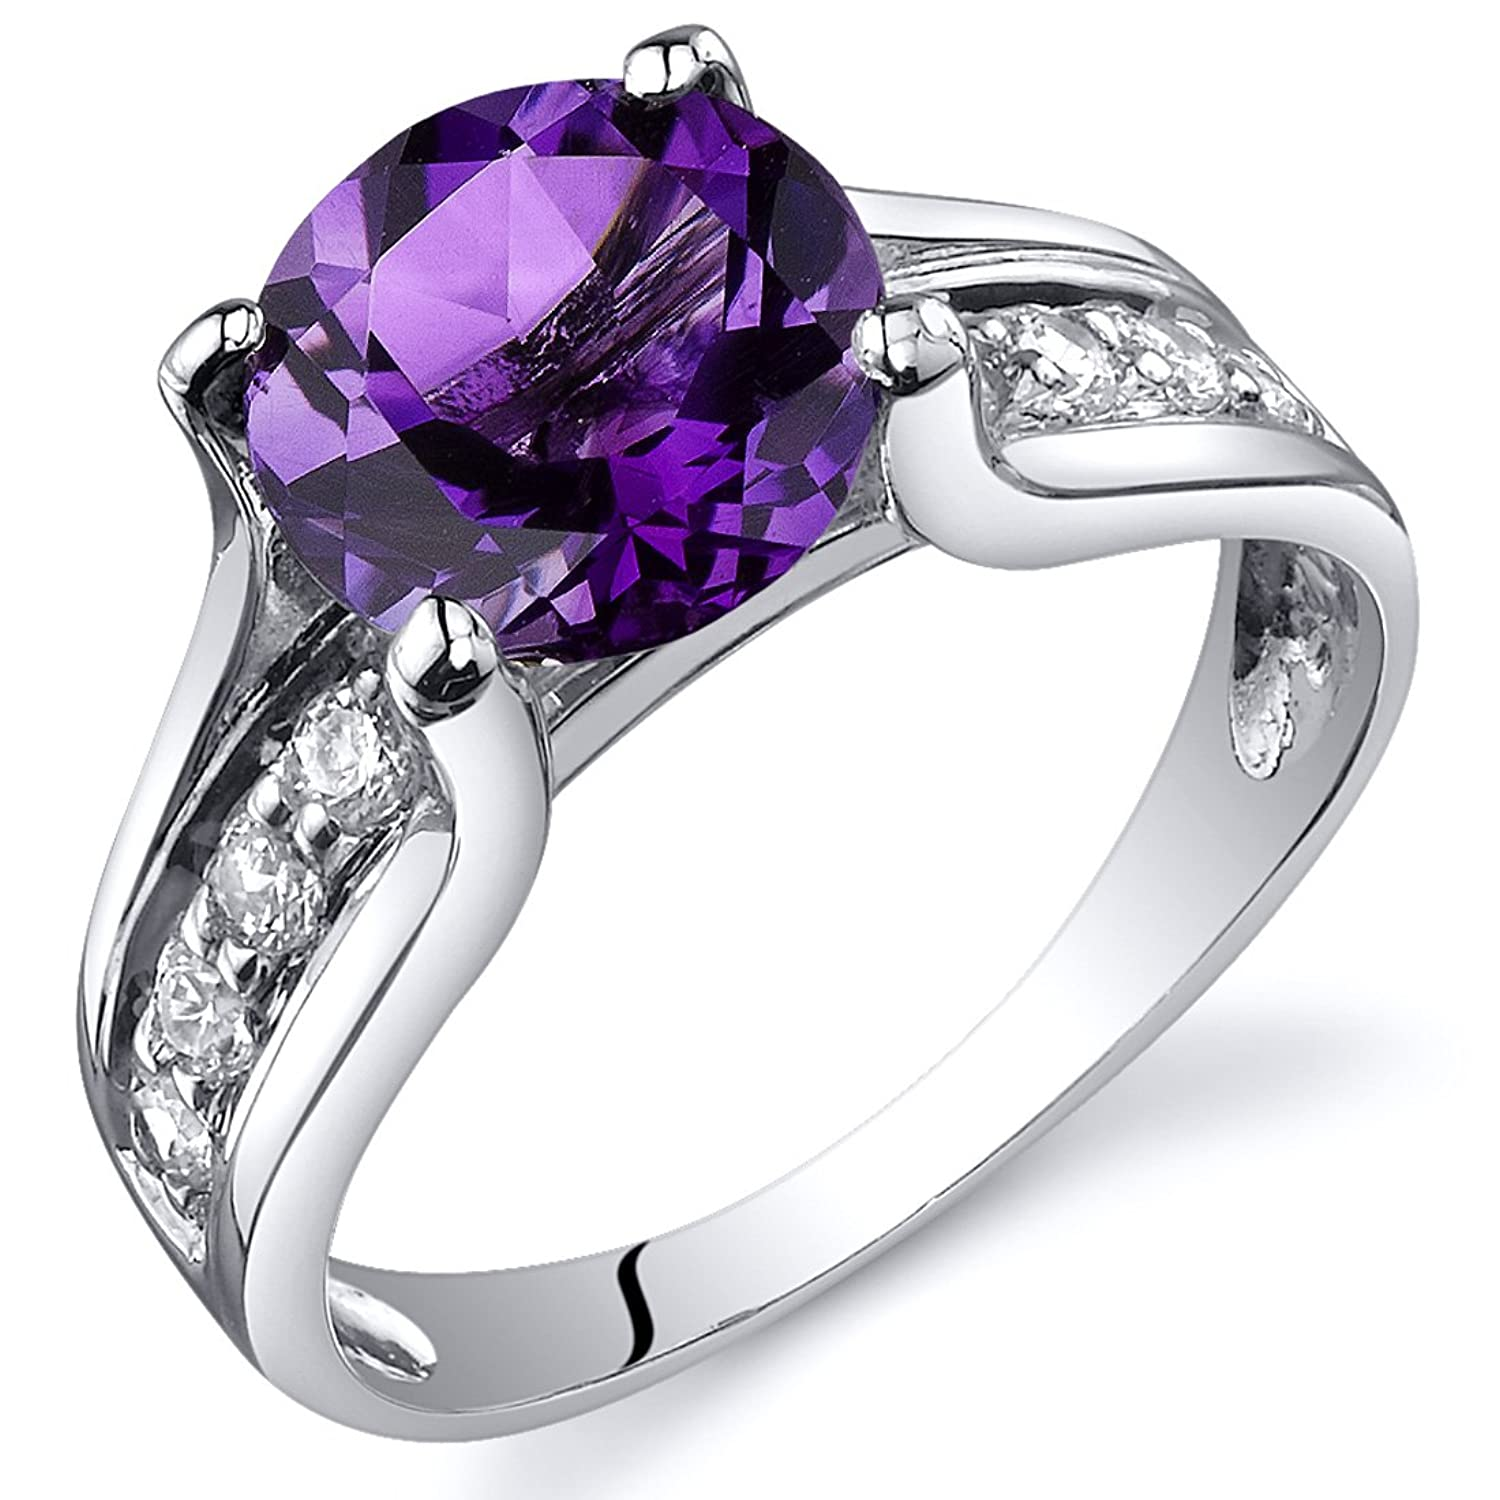 silver sterling allure amethyst ring crystal fine jewelry of heart rings natural love